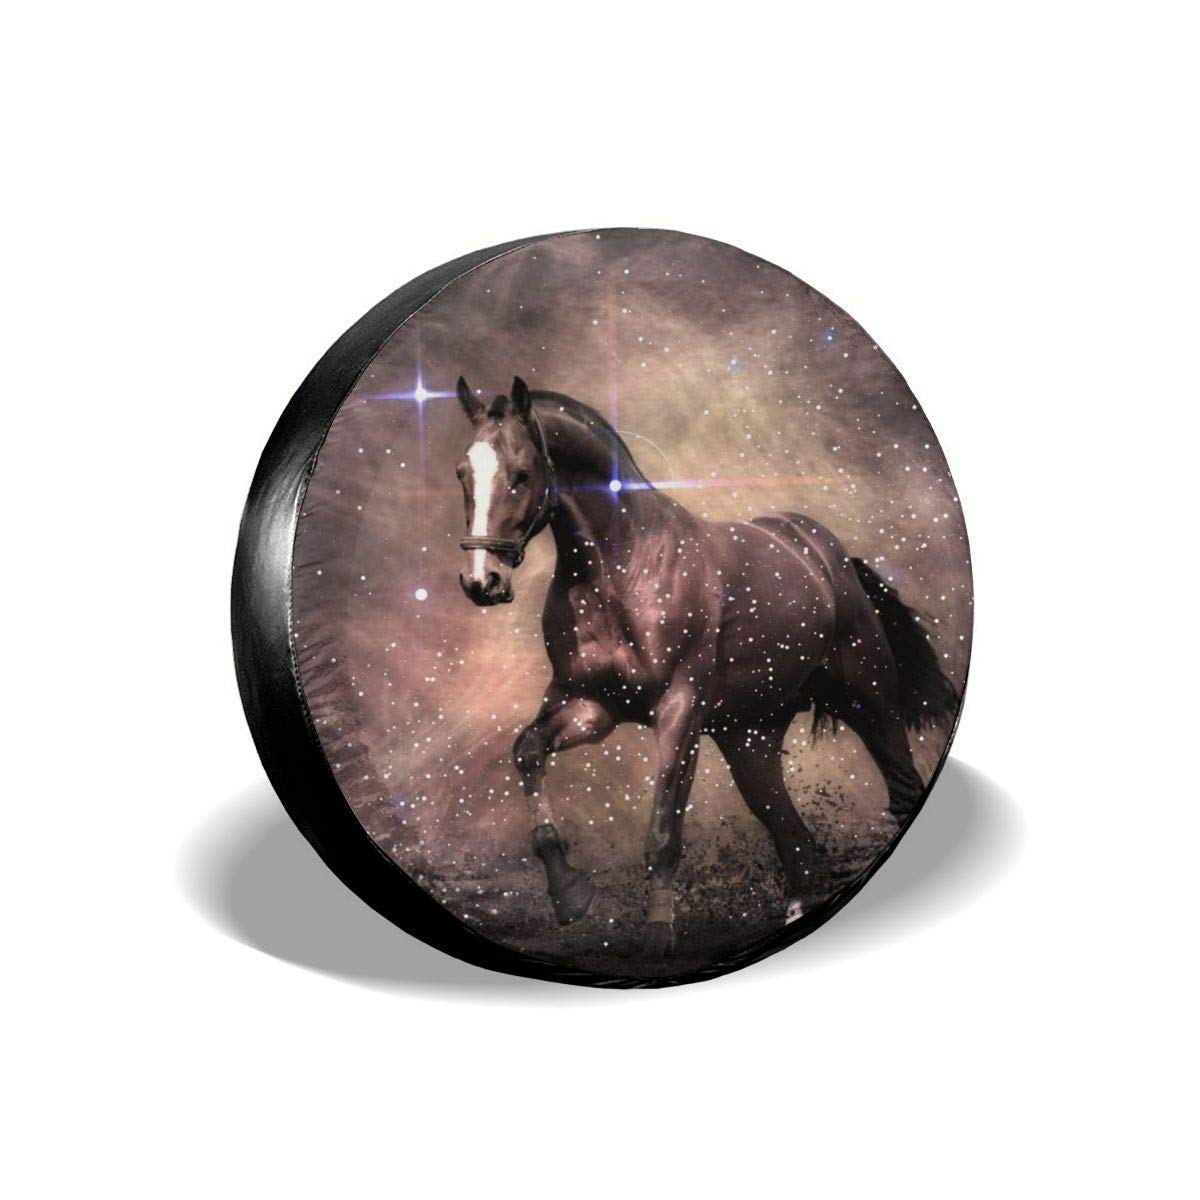 Tire Cover Running Horse Potable Polyester Universal Spare Wheel Tire Cover Wheel Covers for Jeep Trailer RV SUV Truck Camper Travel Trailer Accessories 14,15,16,17 Inch